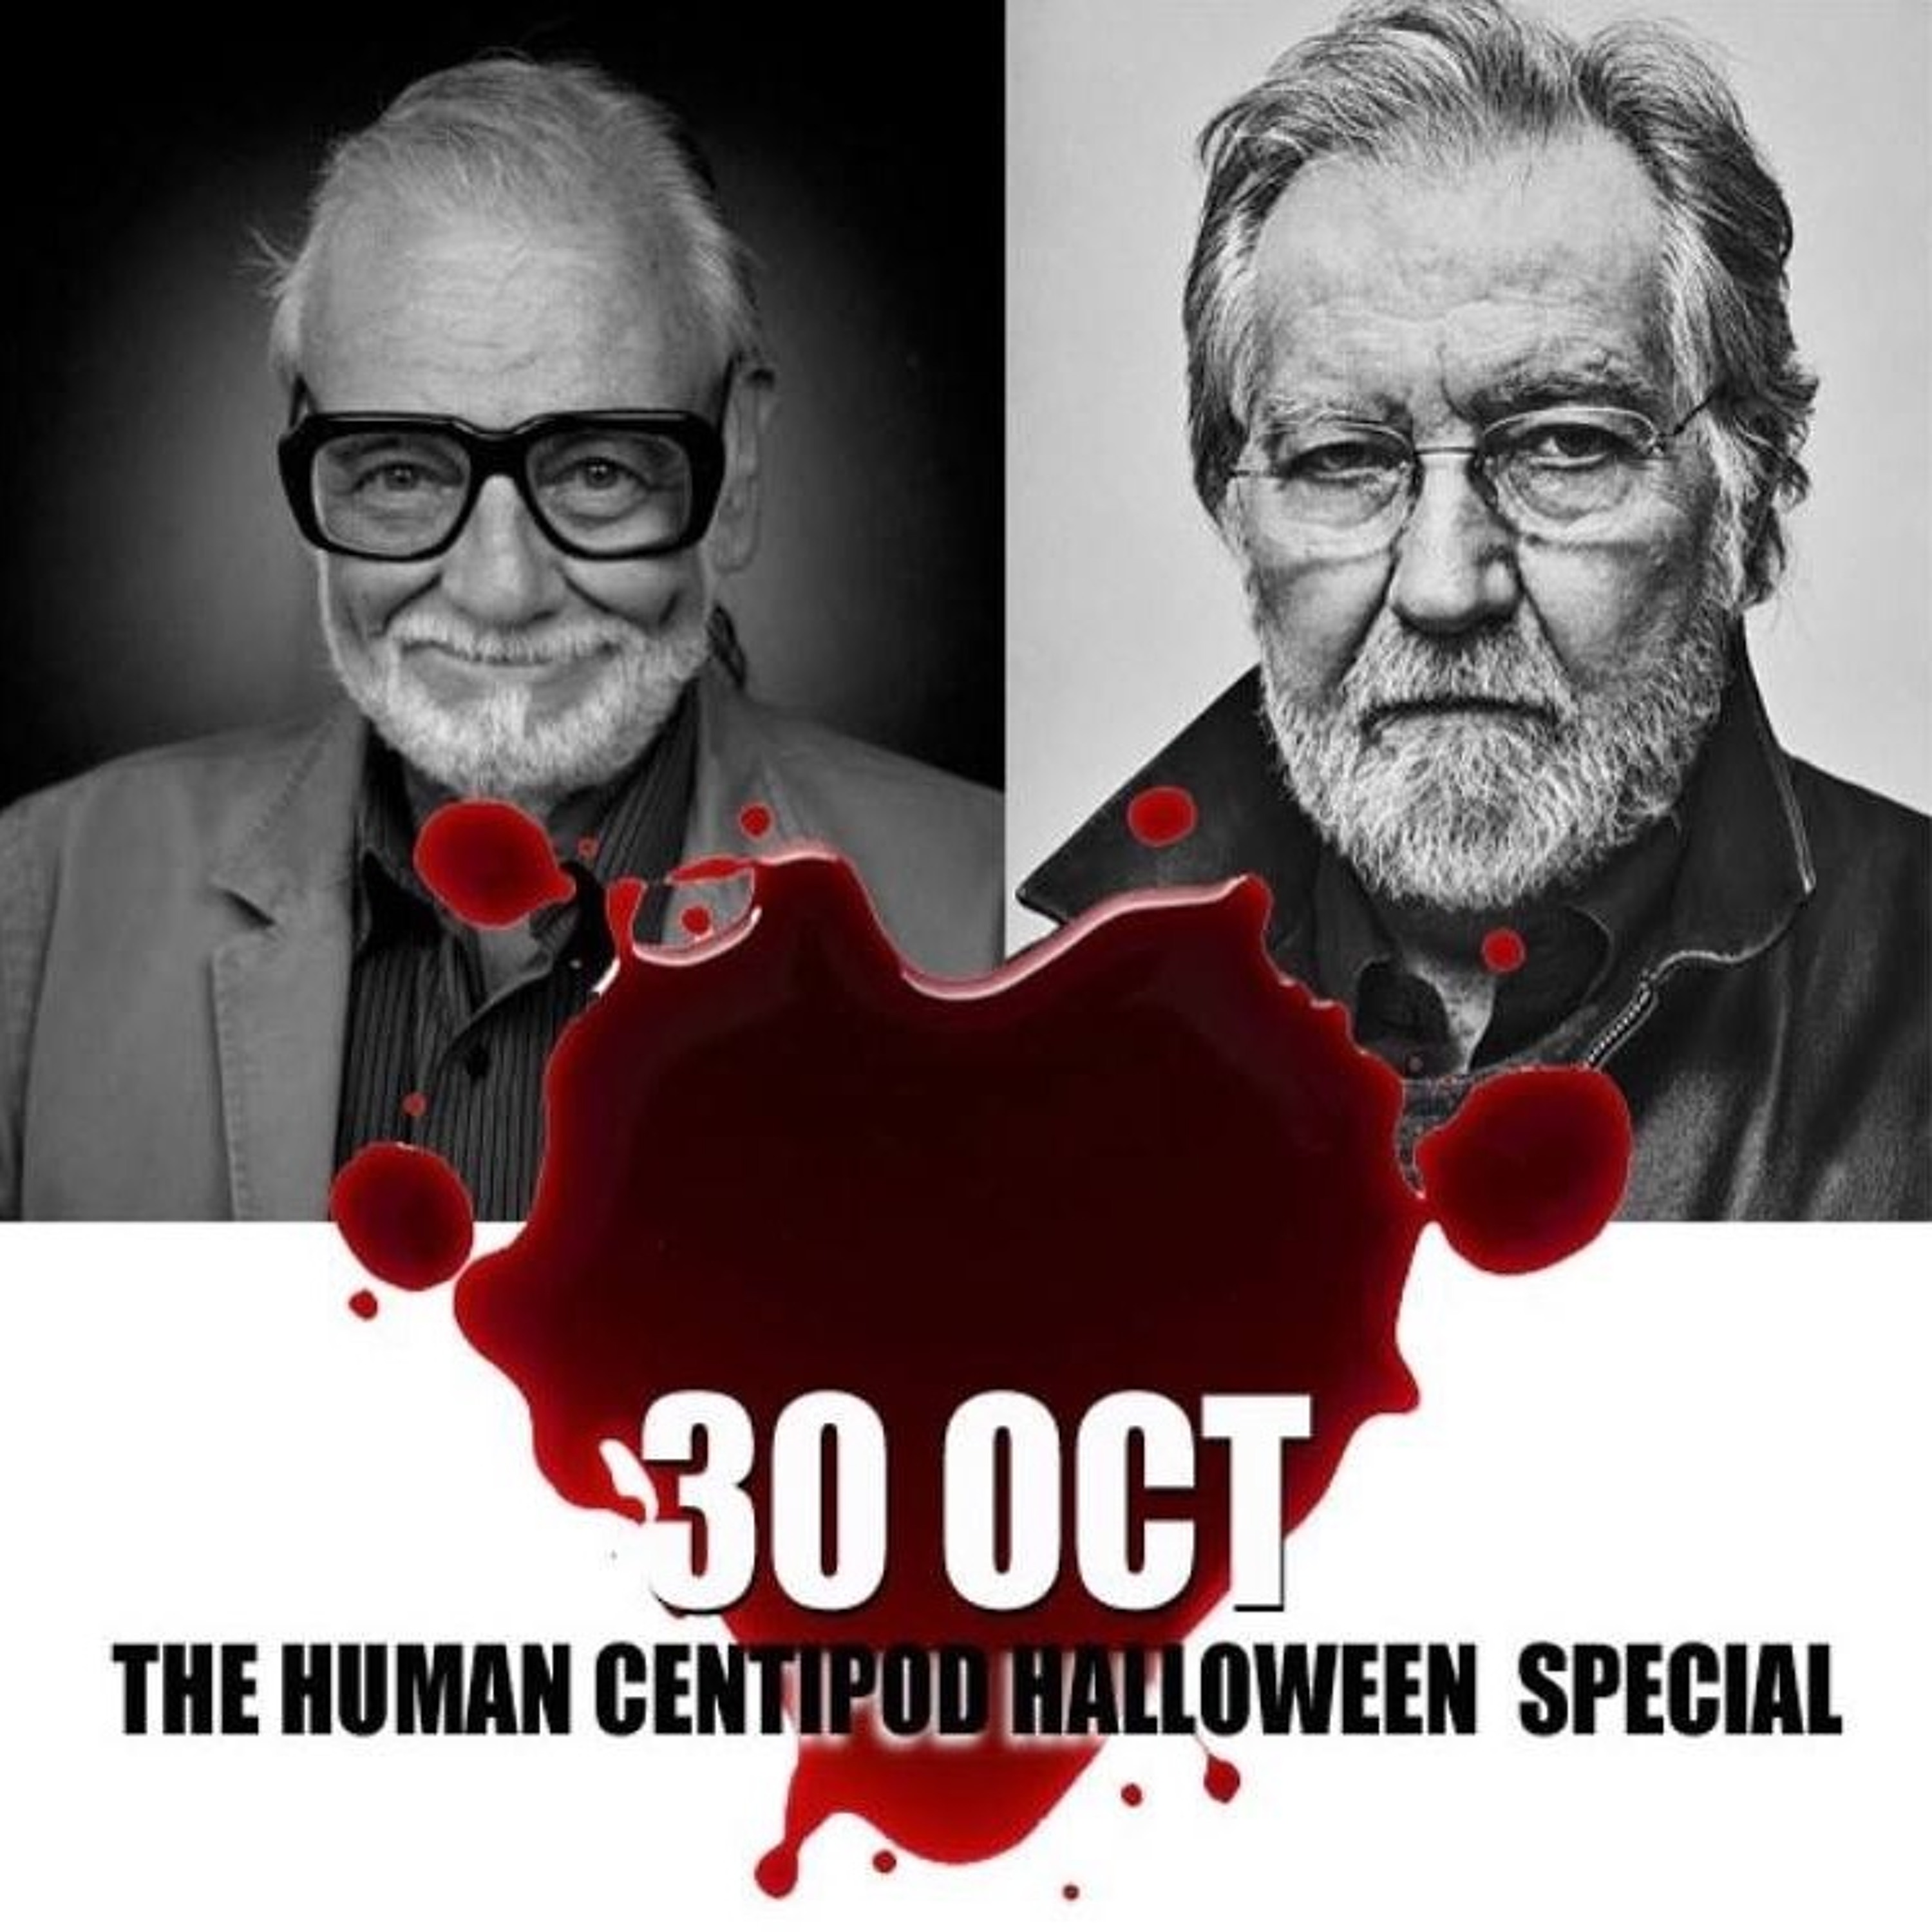 EPISODE 24: Chainsaws and Ghouls - Requiem for Tobe Hooper and George A. Romero.